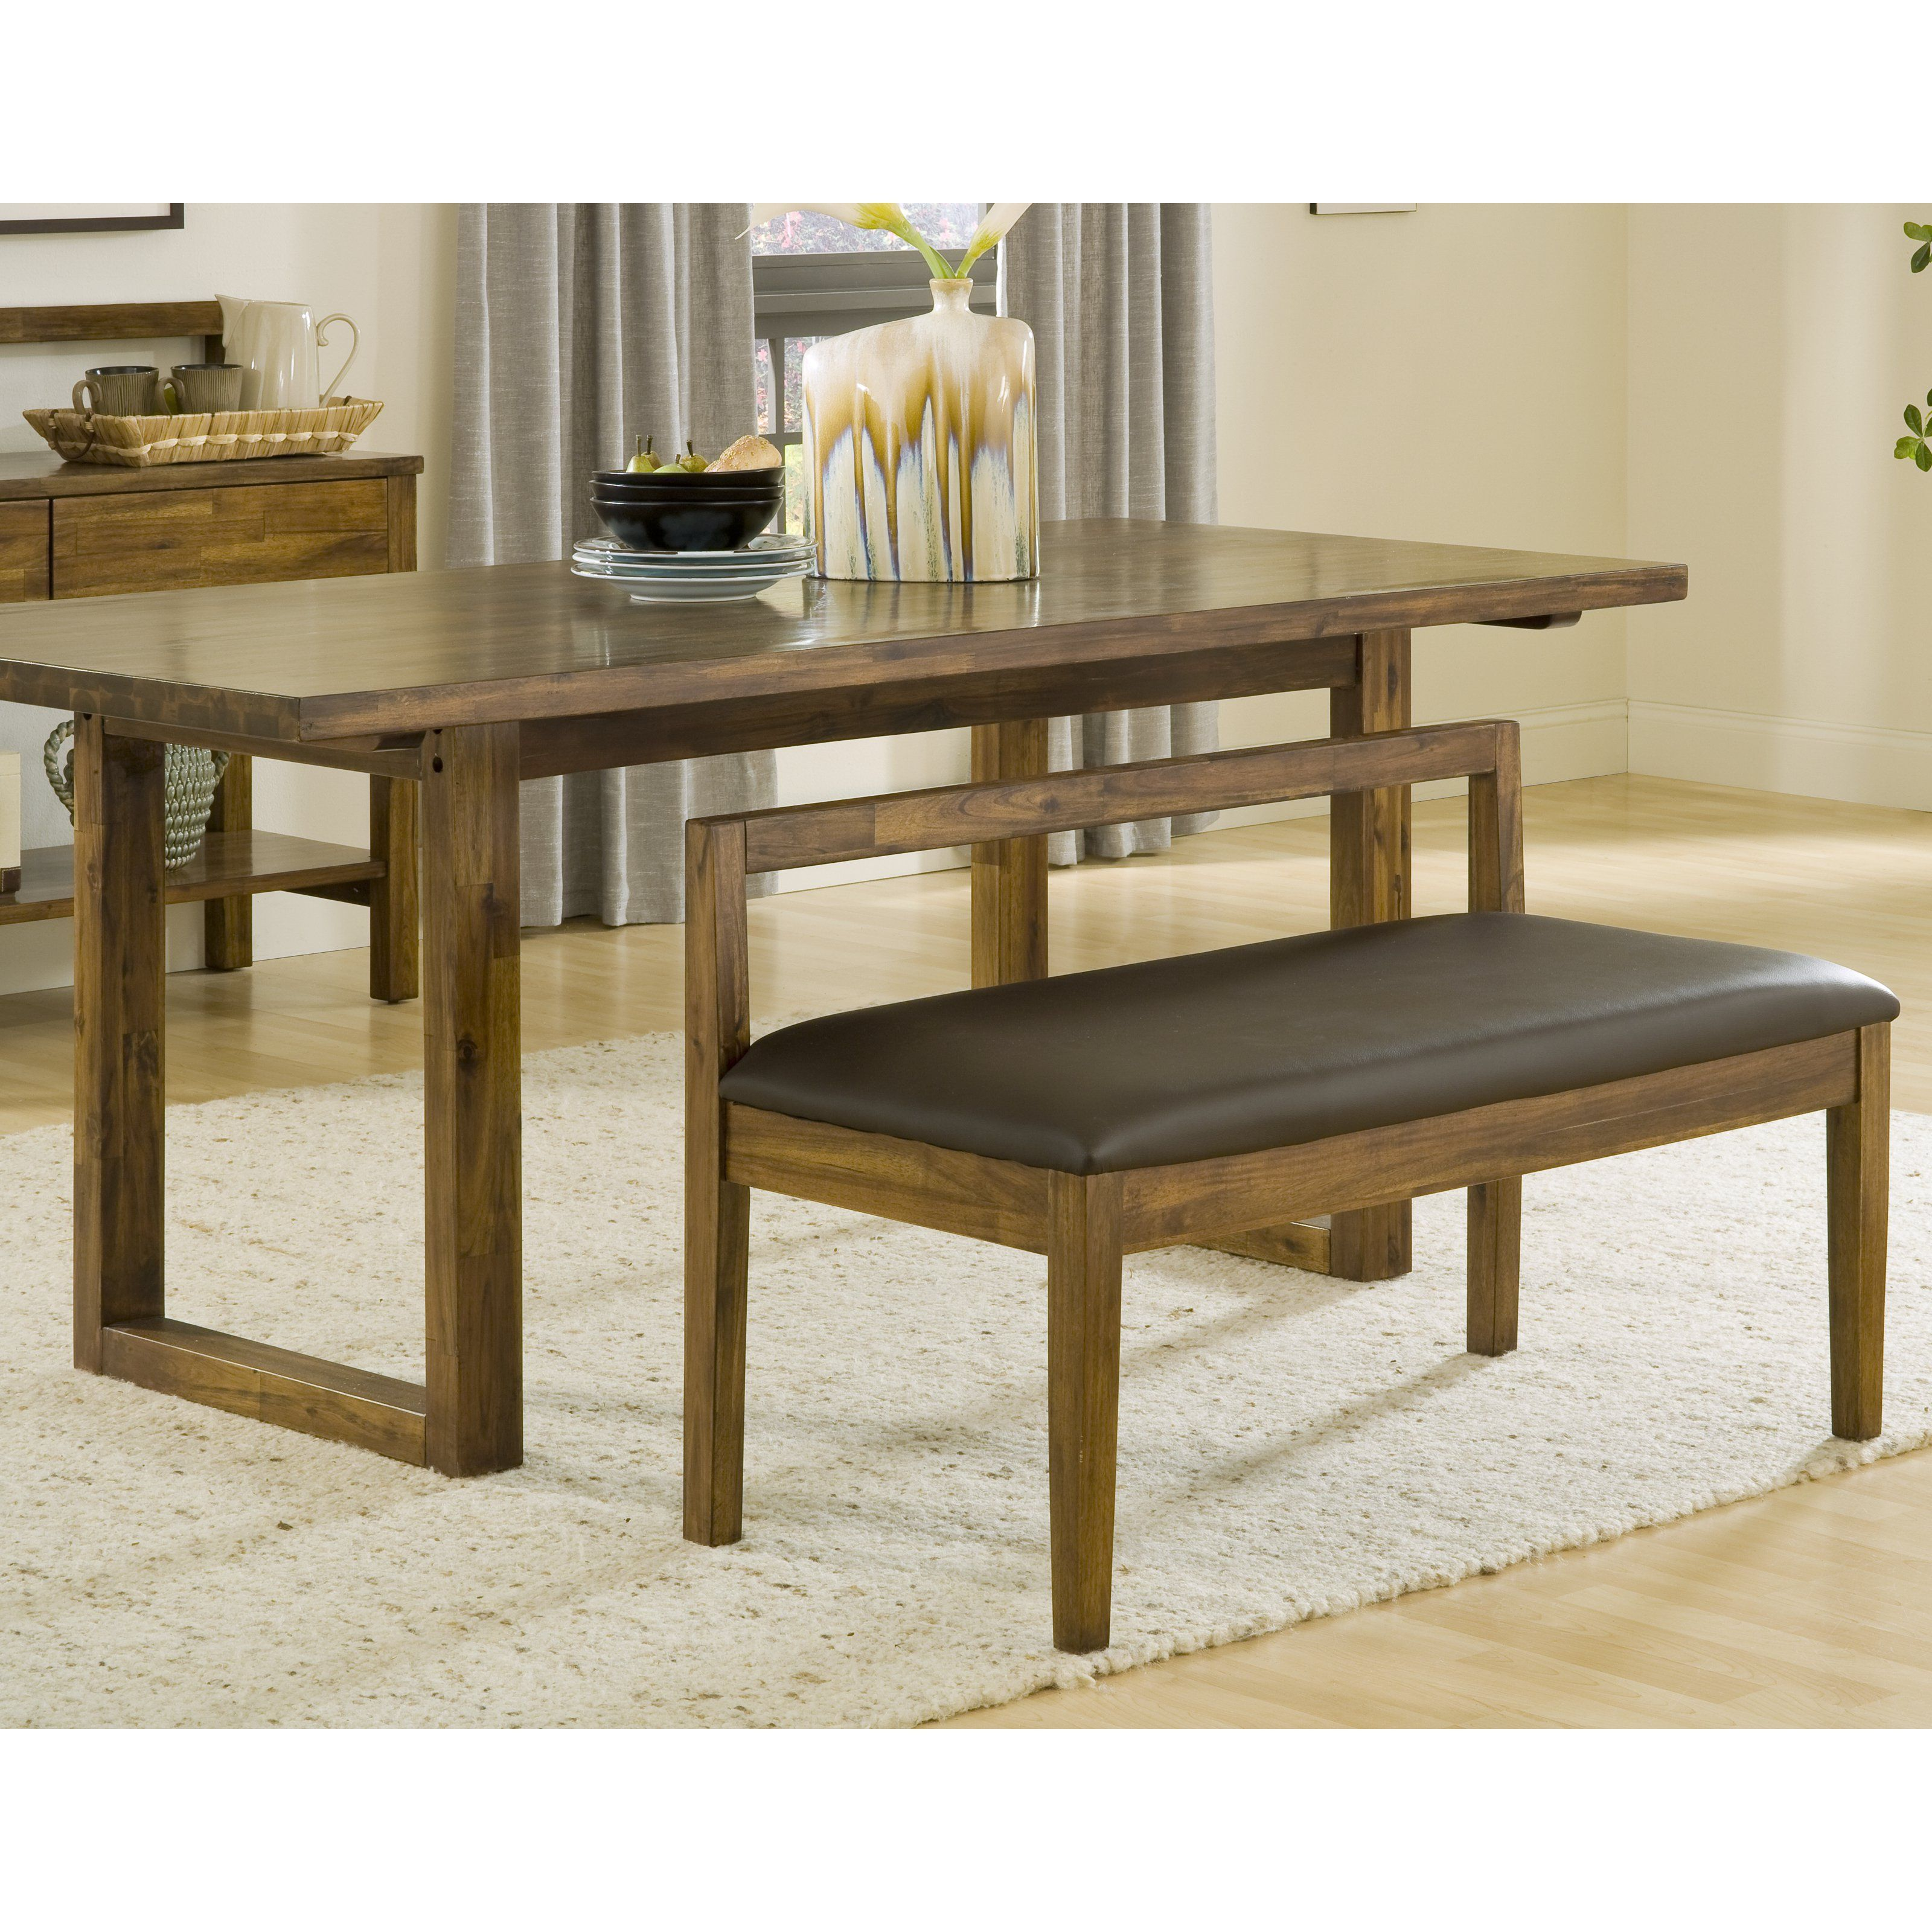 Cool Modus Alba Solid Wood Dining Bench With Recycled Leather Dailytribune Chair Design For Home Dailytribuneorg